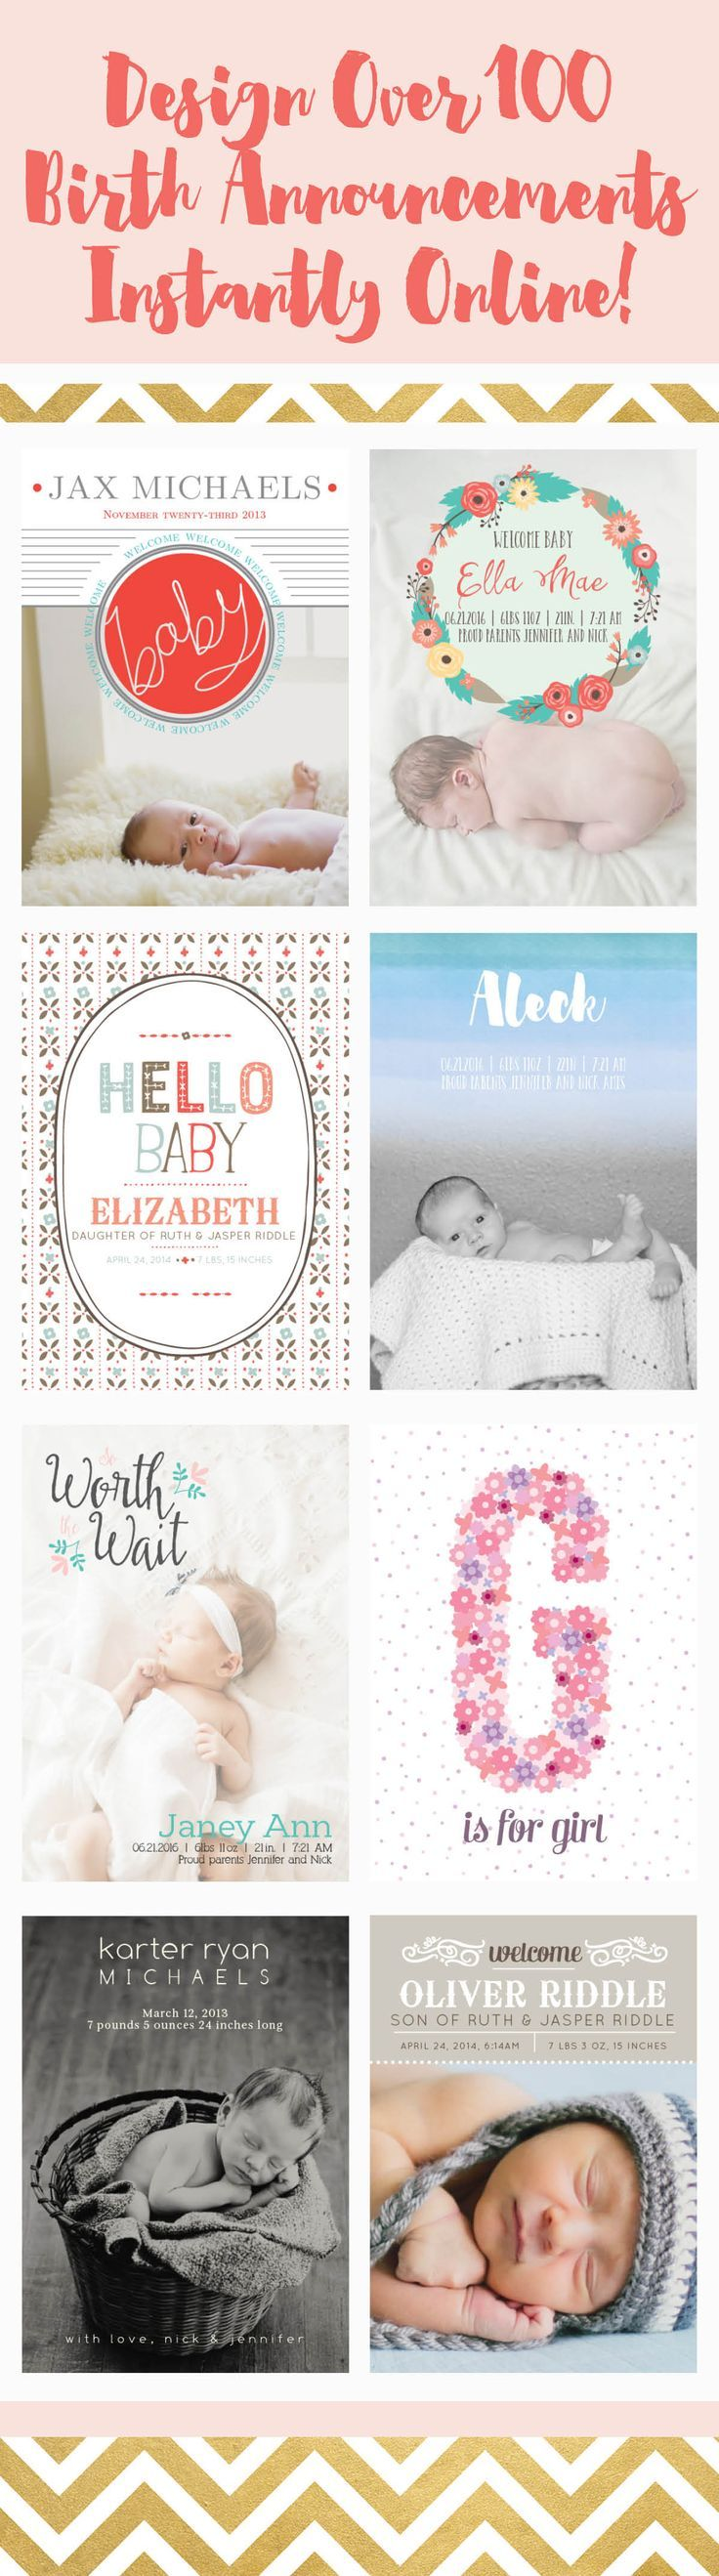 37 best Baby images on Pinterest